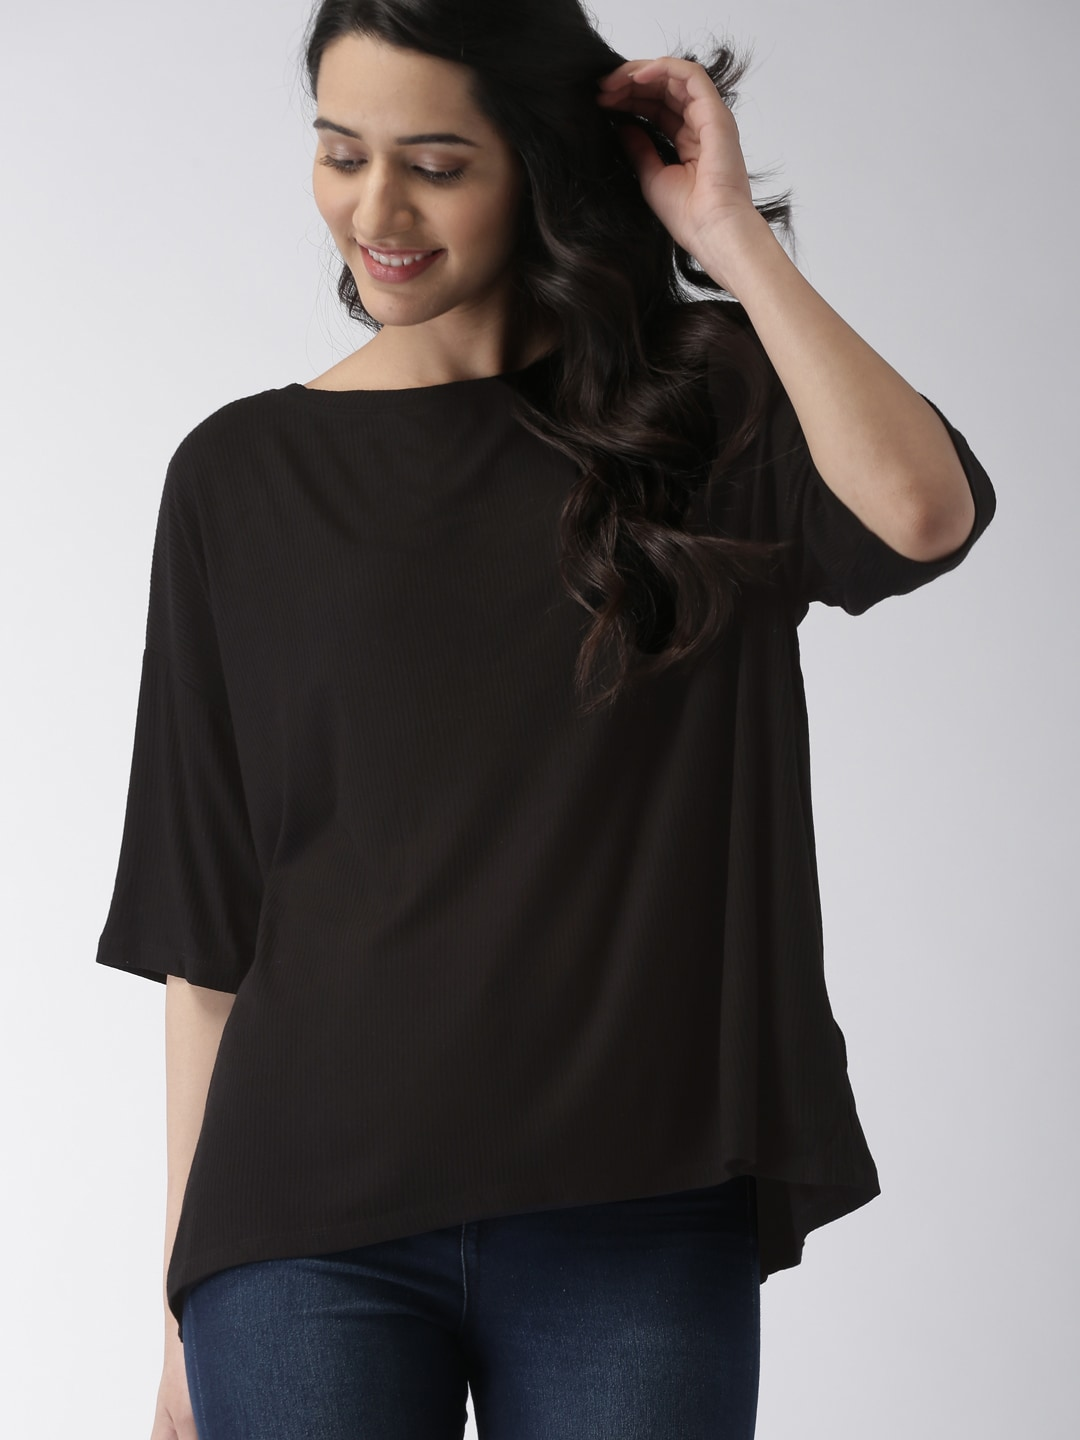 4b1820ef3b94a Ladies Tops - Buy Tops   T-shirts for Women Online